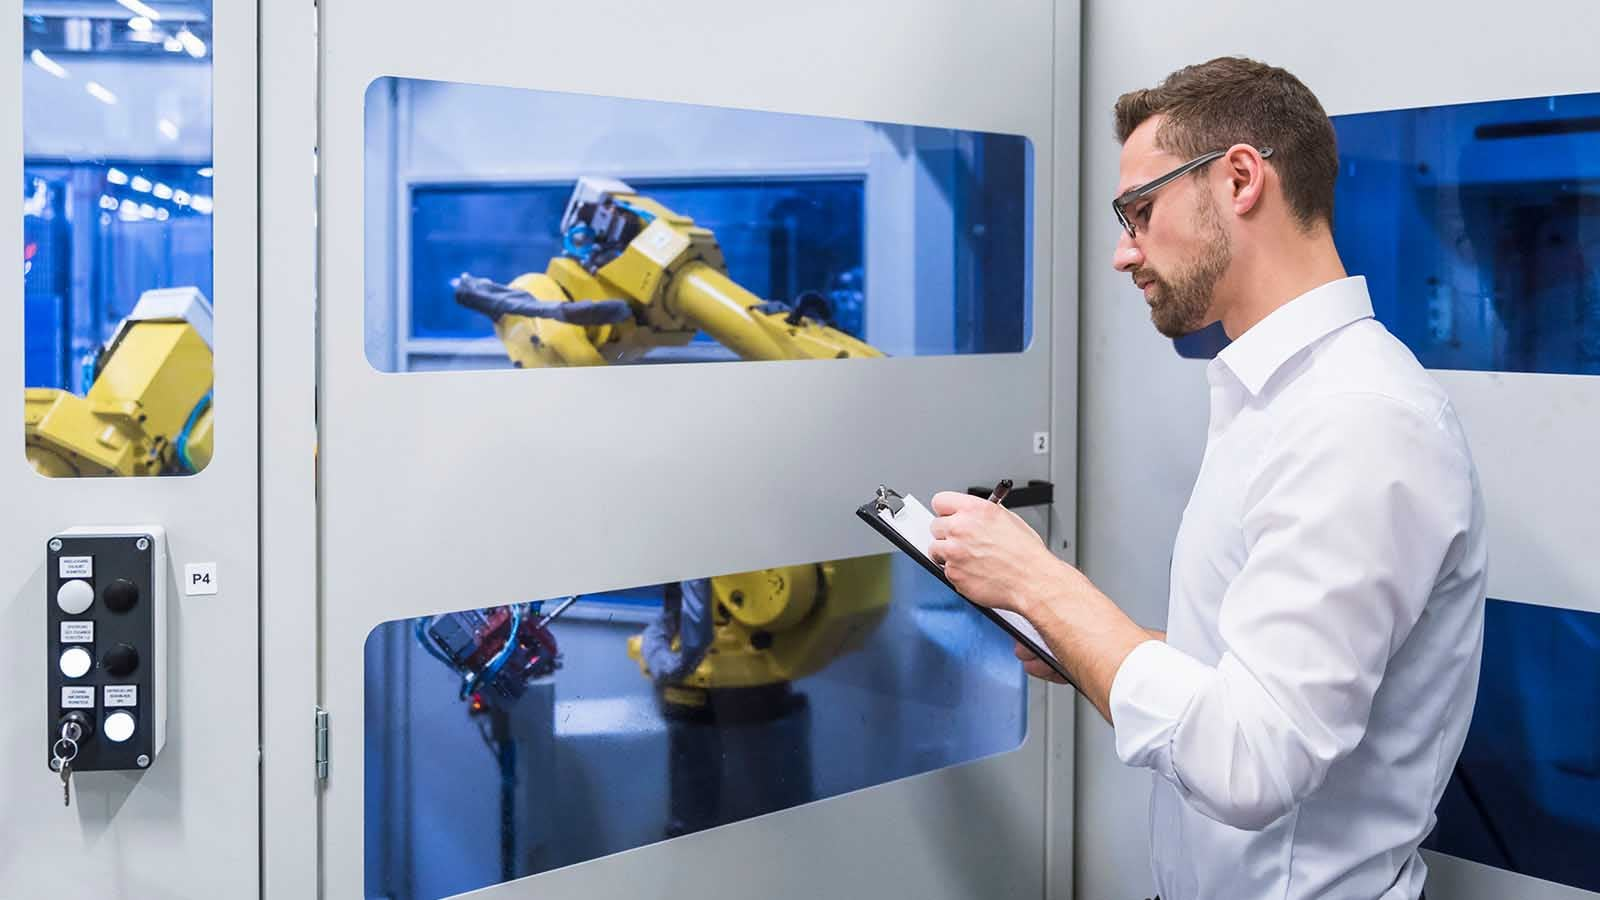 Man checking industrial robotic device